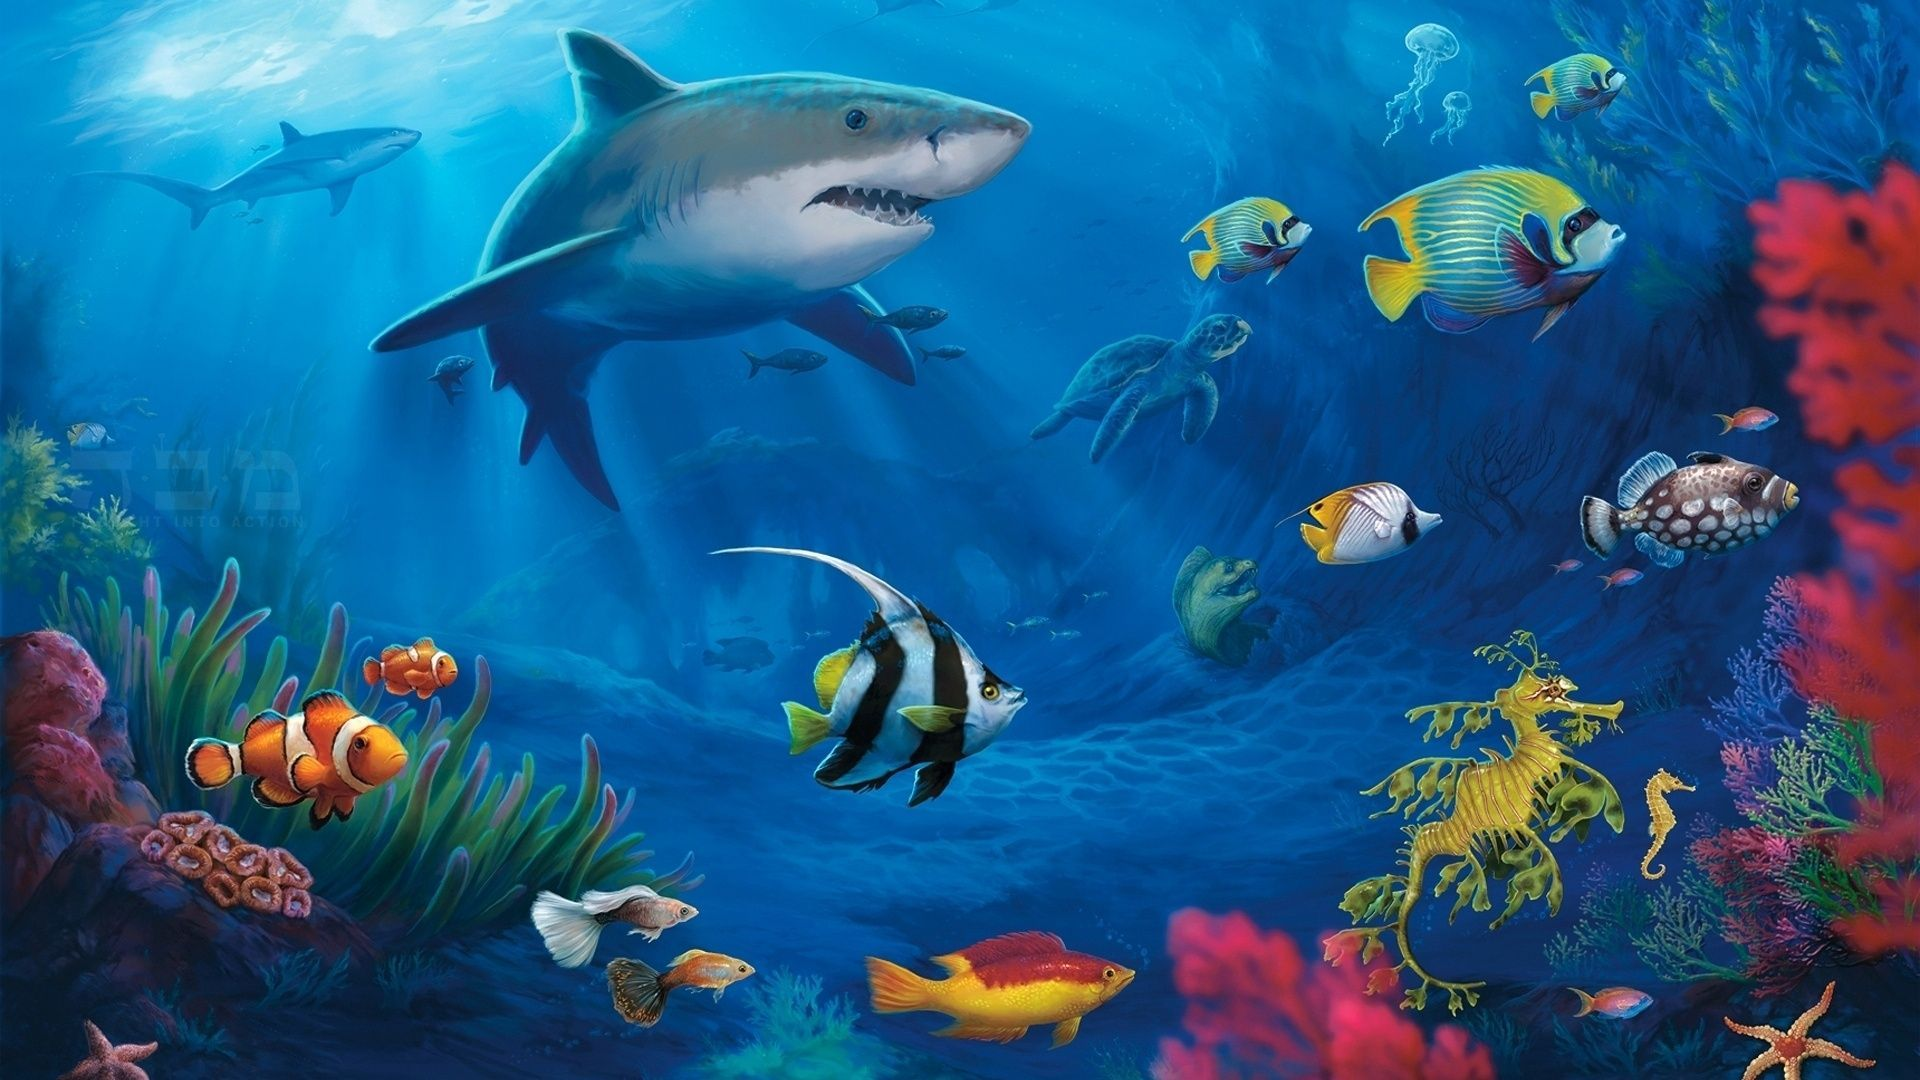 Water Fish Images